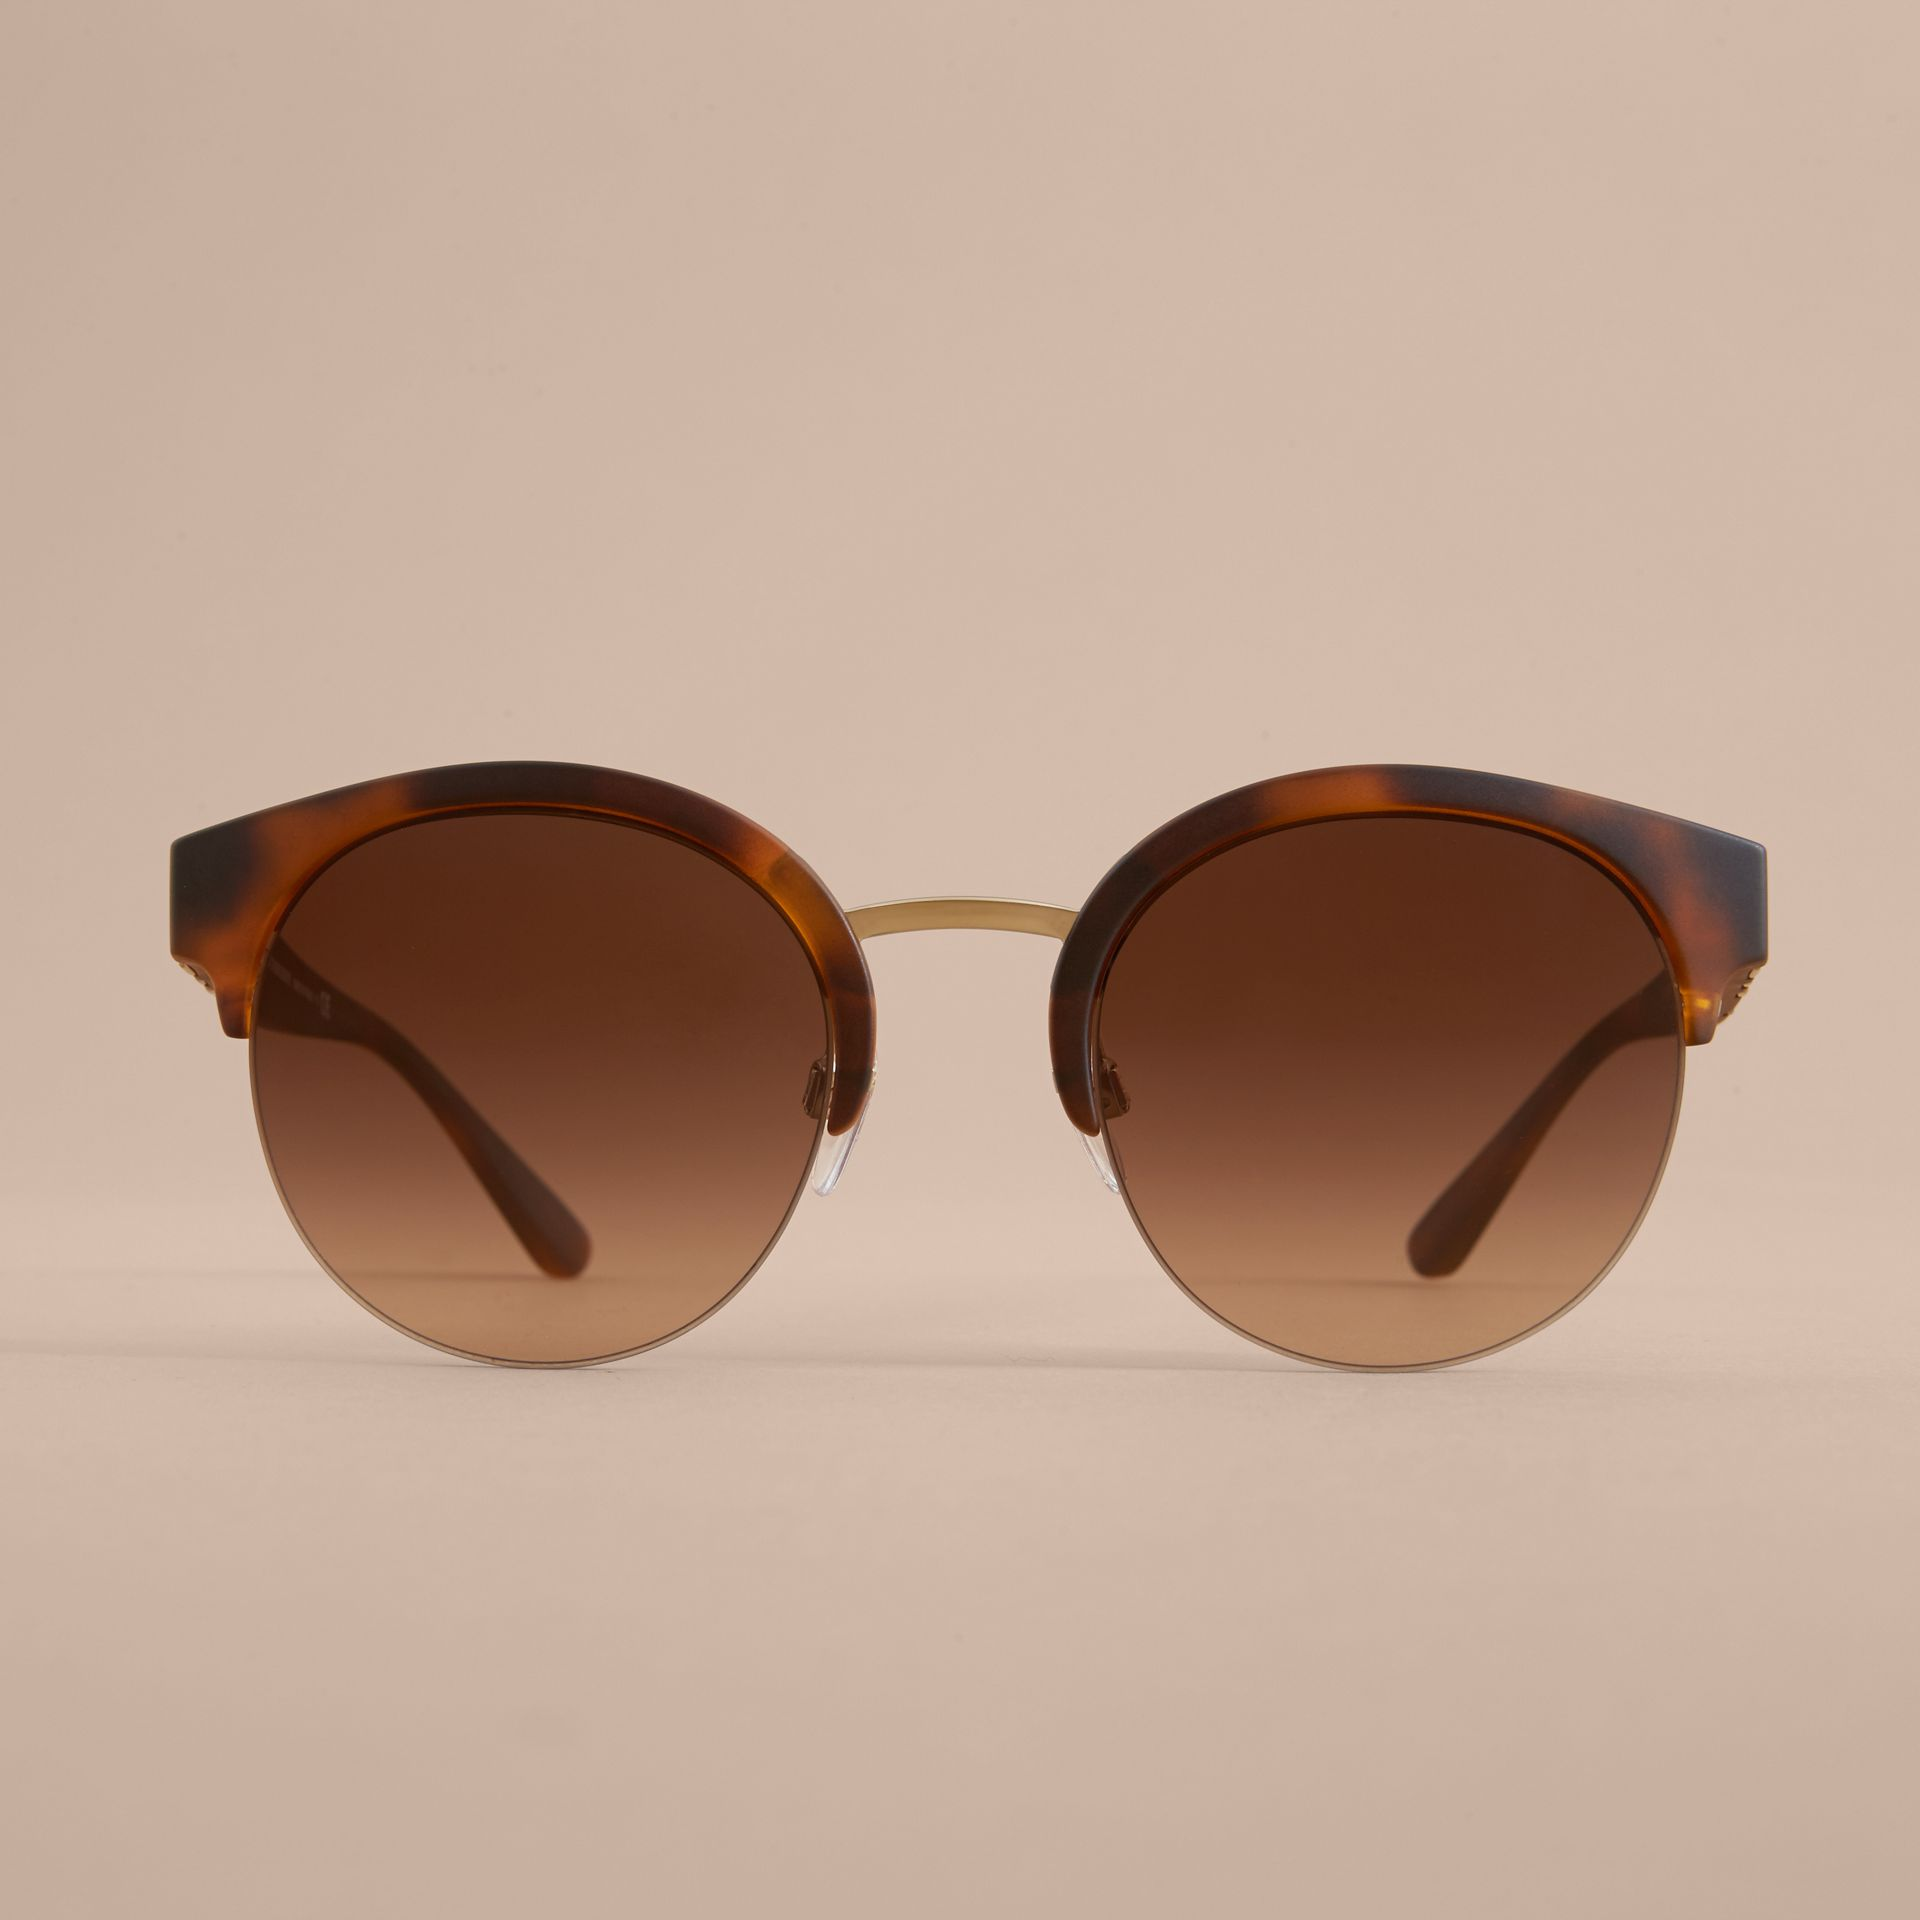 Check Detail Round Half-frame Sunglasses in Brown - Women | Burberry Canada - gallery image 3